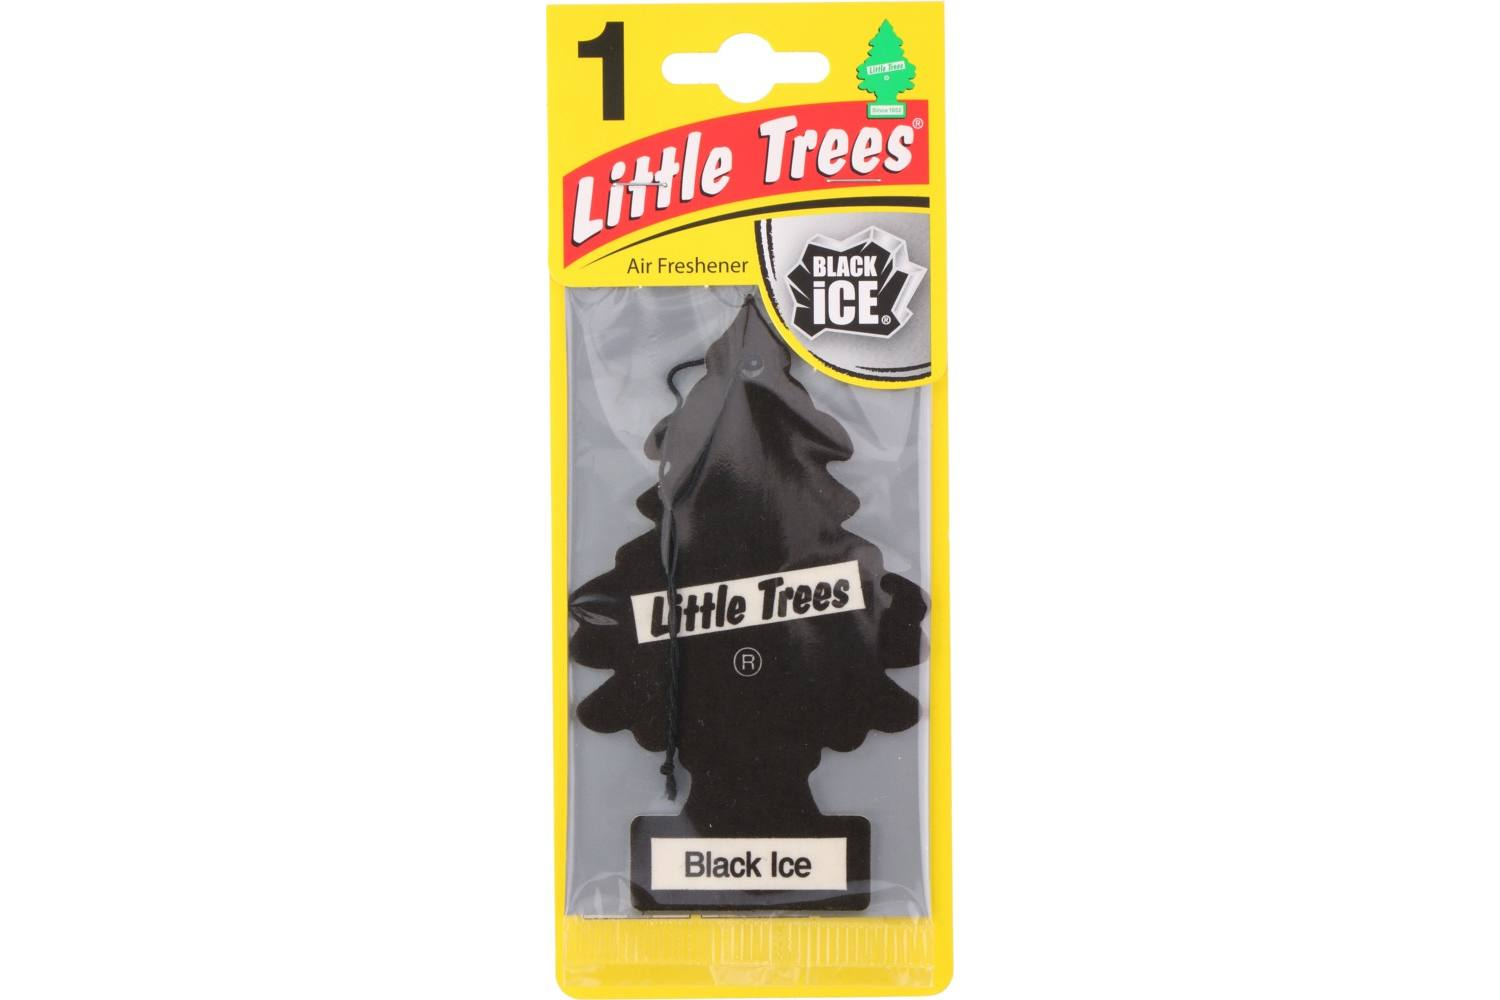 Air freshener, Little tree, black ice 1